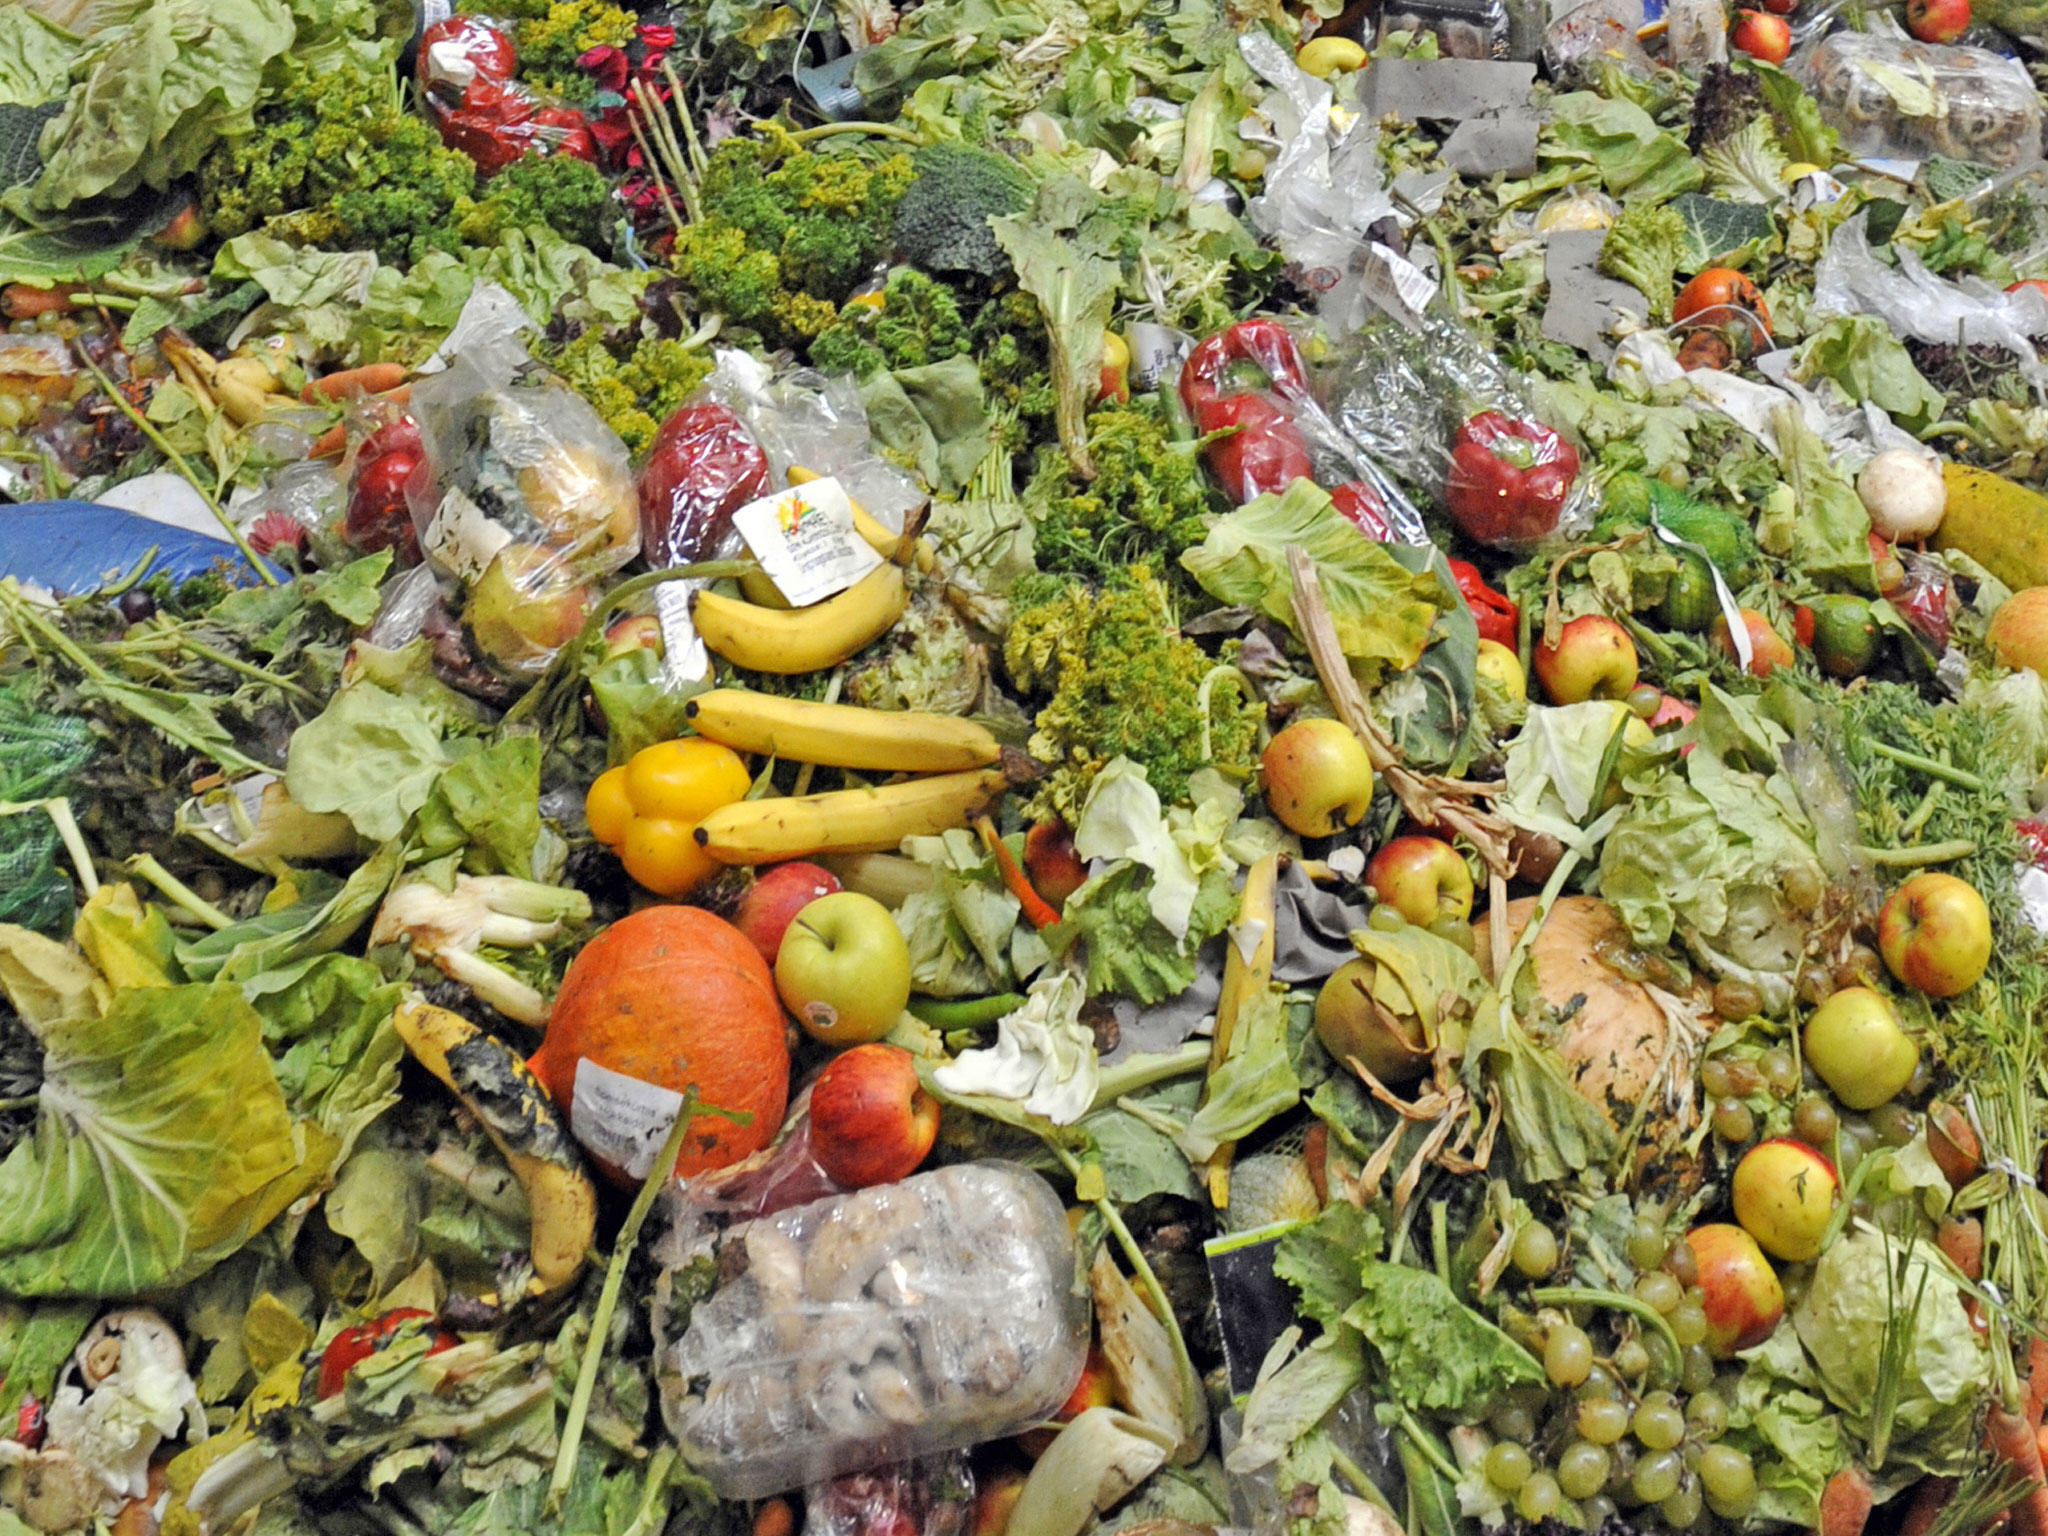 foodwaste blog Sign Our Petition To Force Supermarkets To Donate Unsold Food